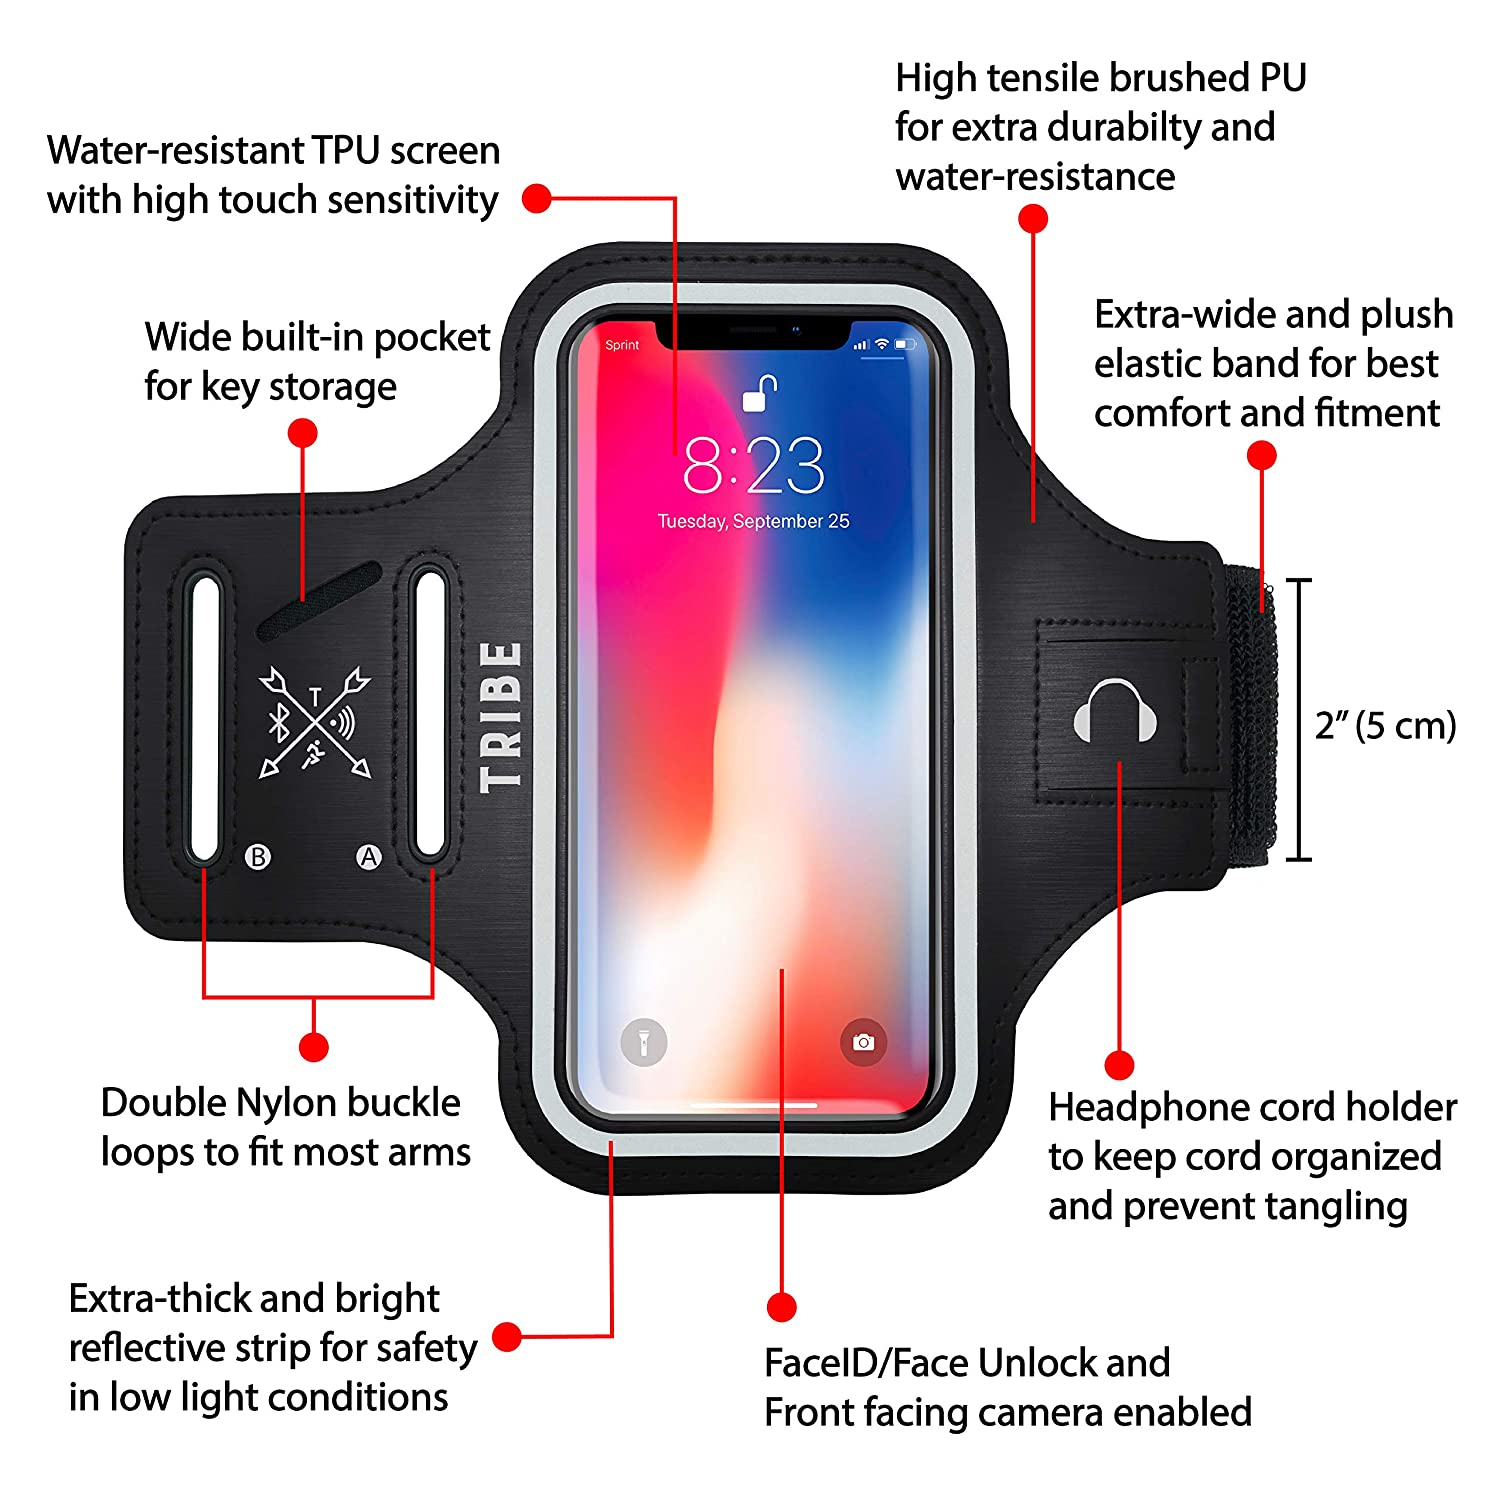 8 TRIBE Water Resistant Cell Phone Armband Case for iPhone X 6S Samsung Galaxy S9 S8 S6 7 Walking Hiking A8 with Adjustable Elastic Band /& Key Holder for Running Xs 6 S7